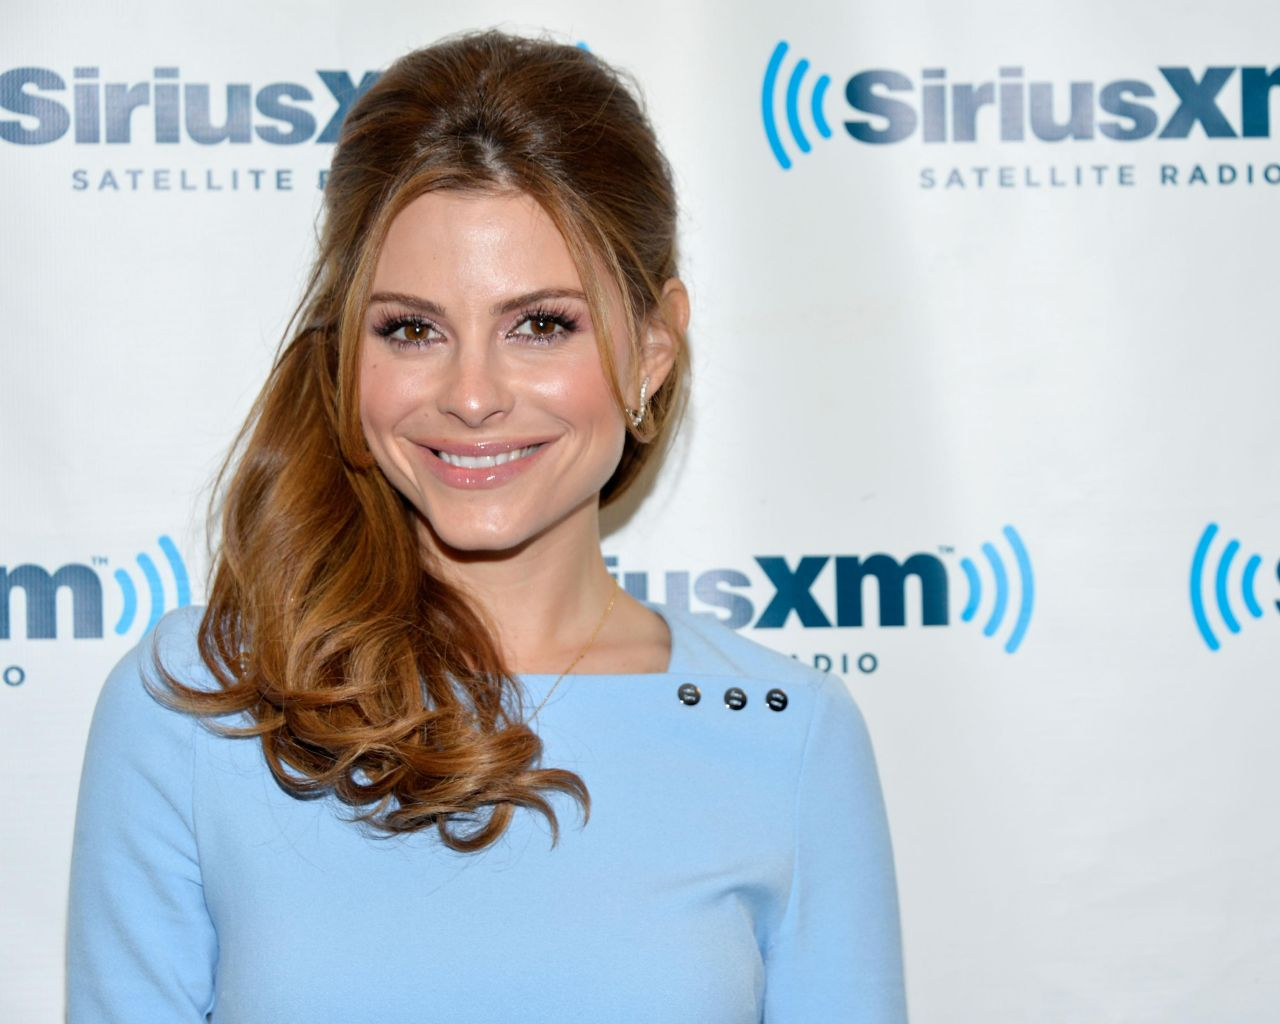 Maria Menounos at SiriusXM Studios in New York City - March 2014